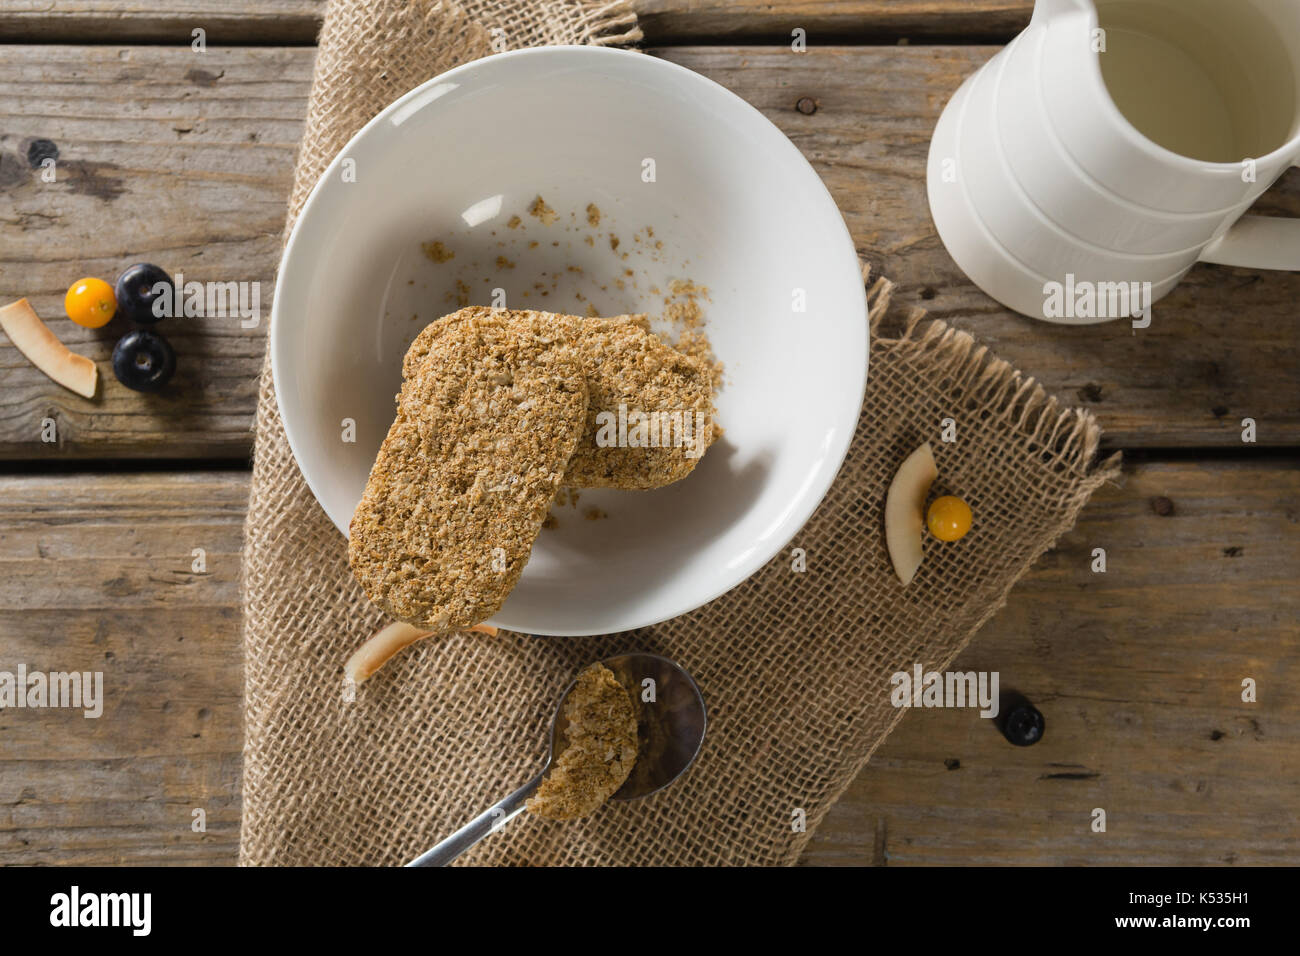 Overhead of granola bar and milk on wooden table - Stock Image